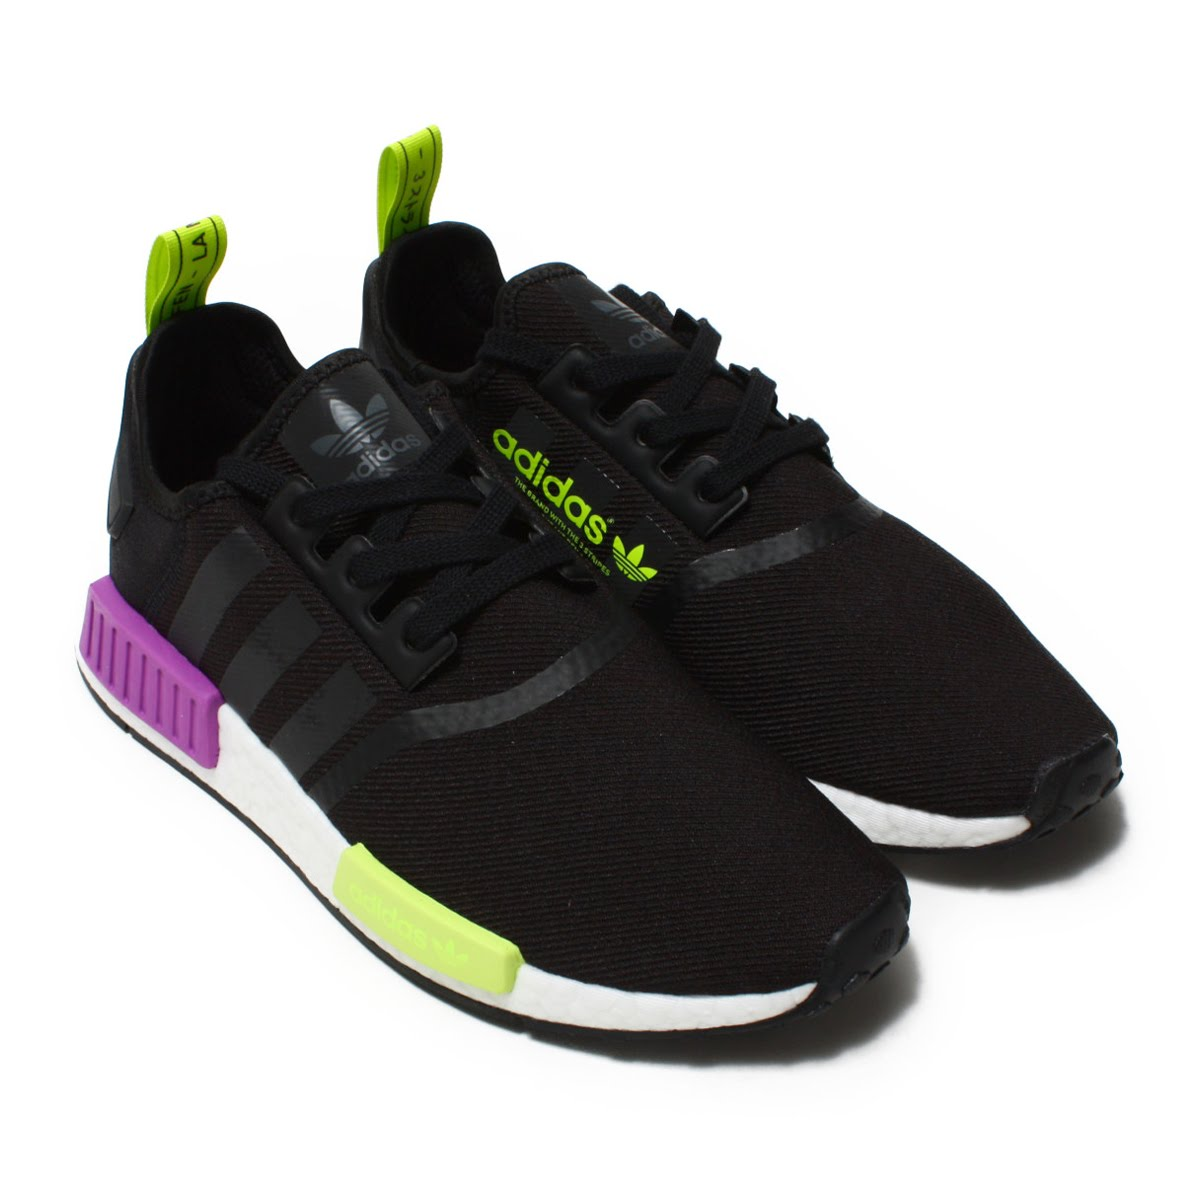 new style 4e514 b32ac adidas Originals NMD R1 (Adidas originals N M D R1) core black   core black    shock ...